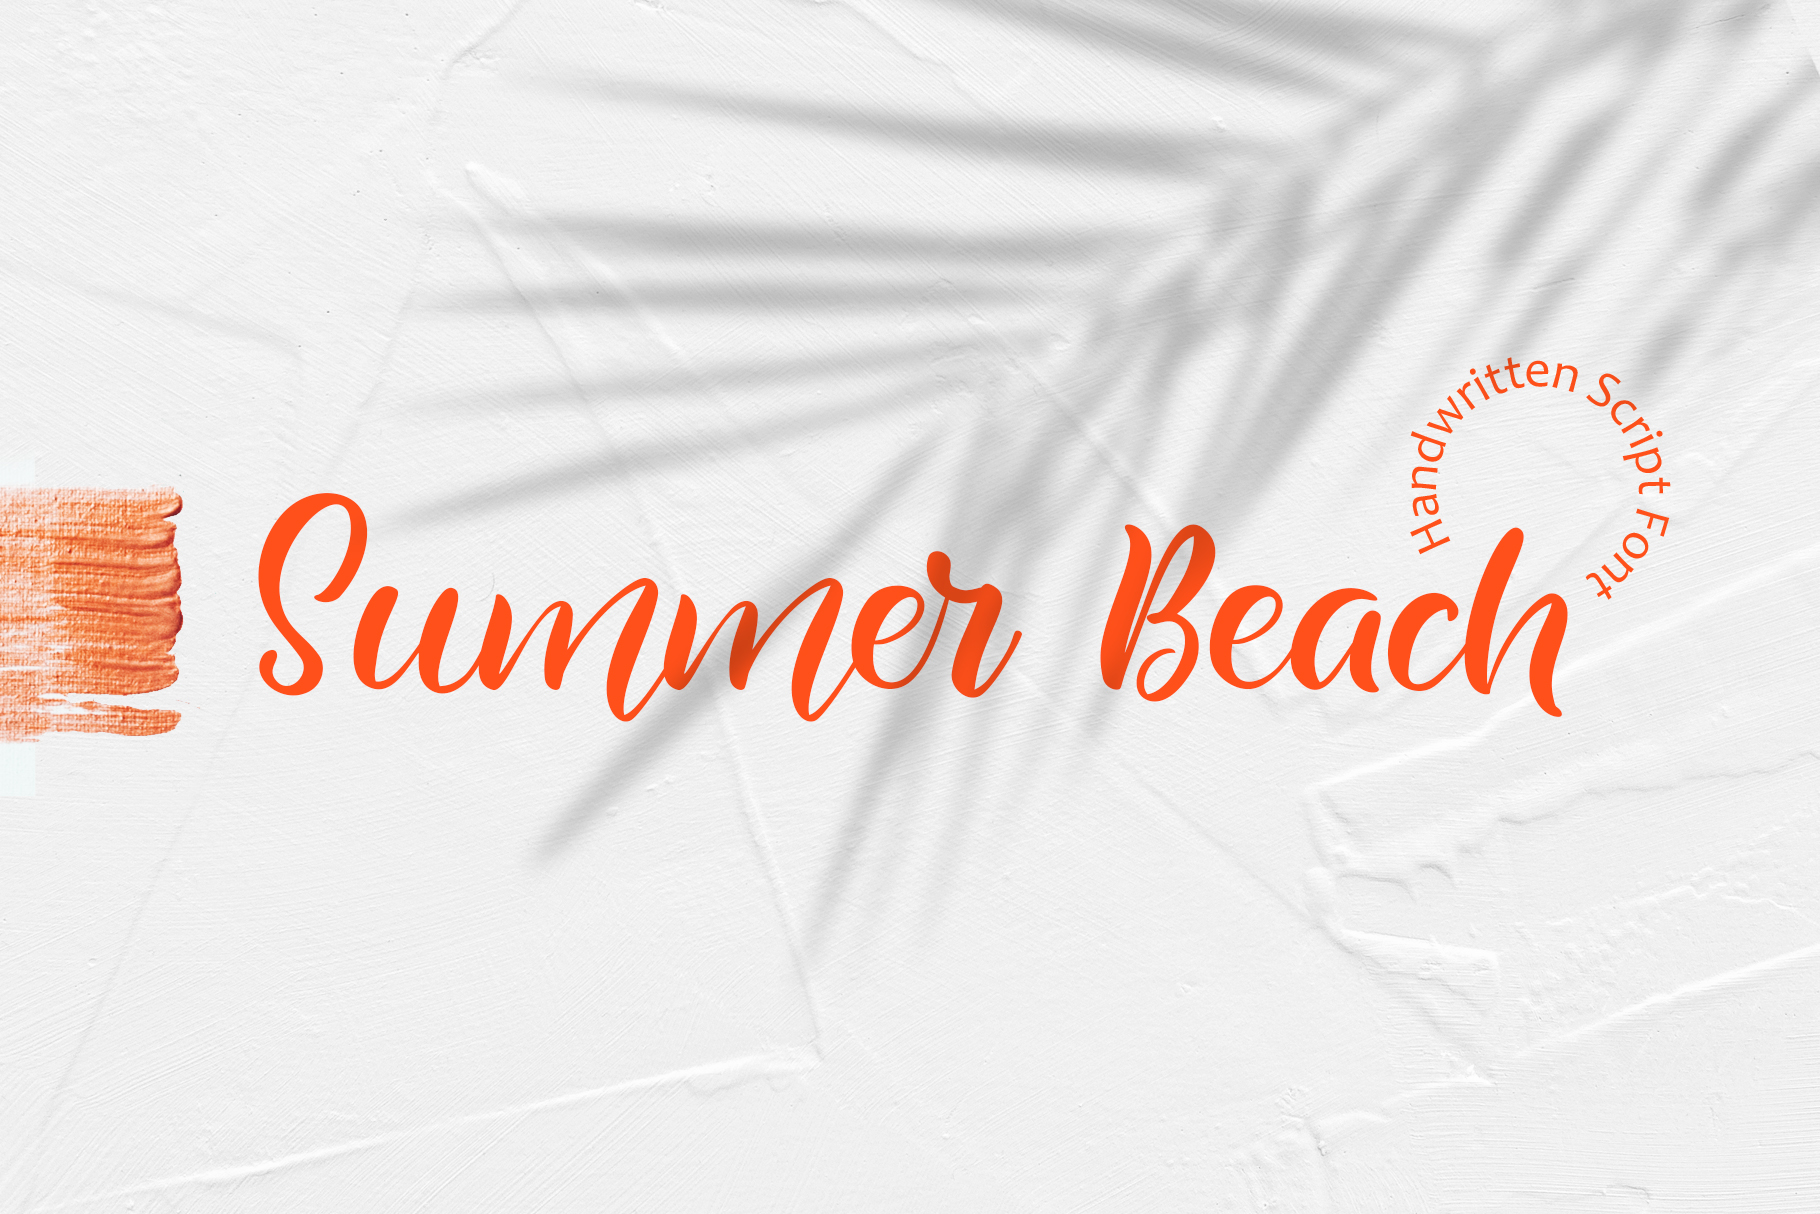 65+ Best Summer & Beach Fonts 2021: Free and Premium Fonts to Make Your Projects Exciting - title02 5